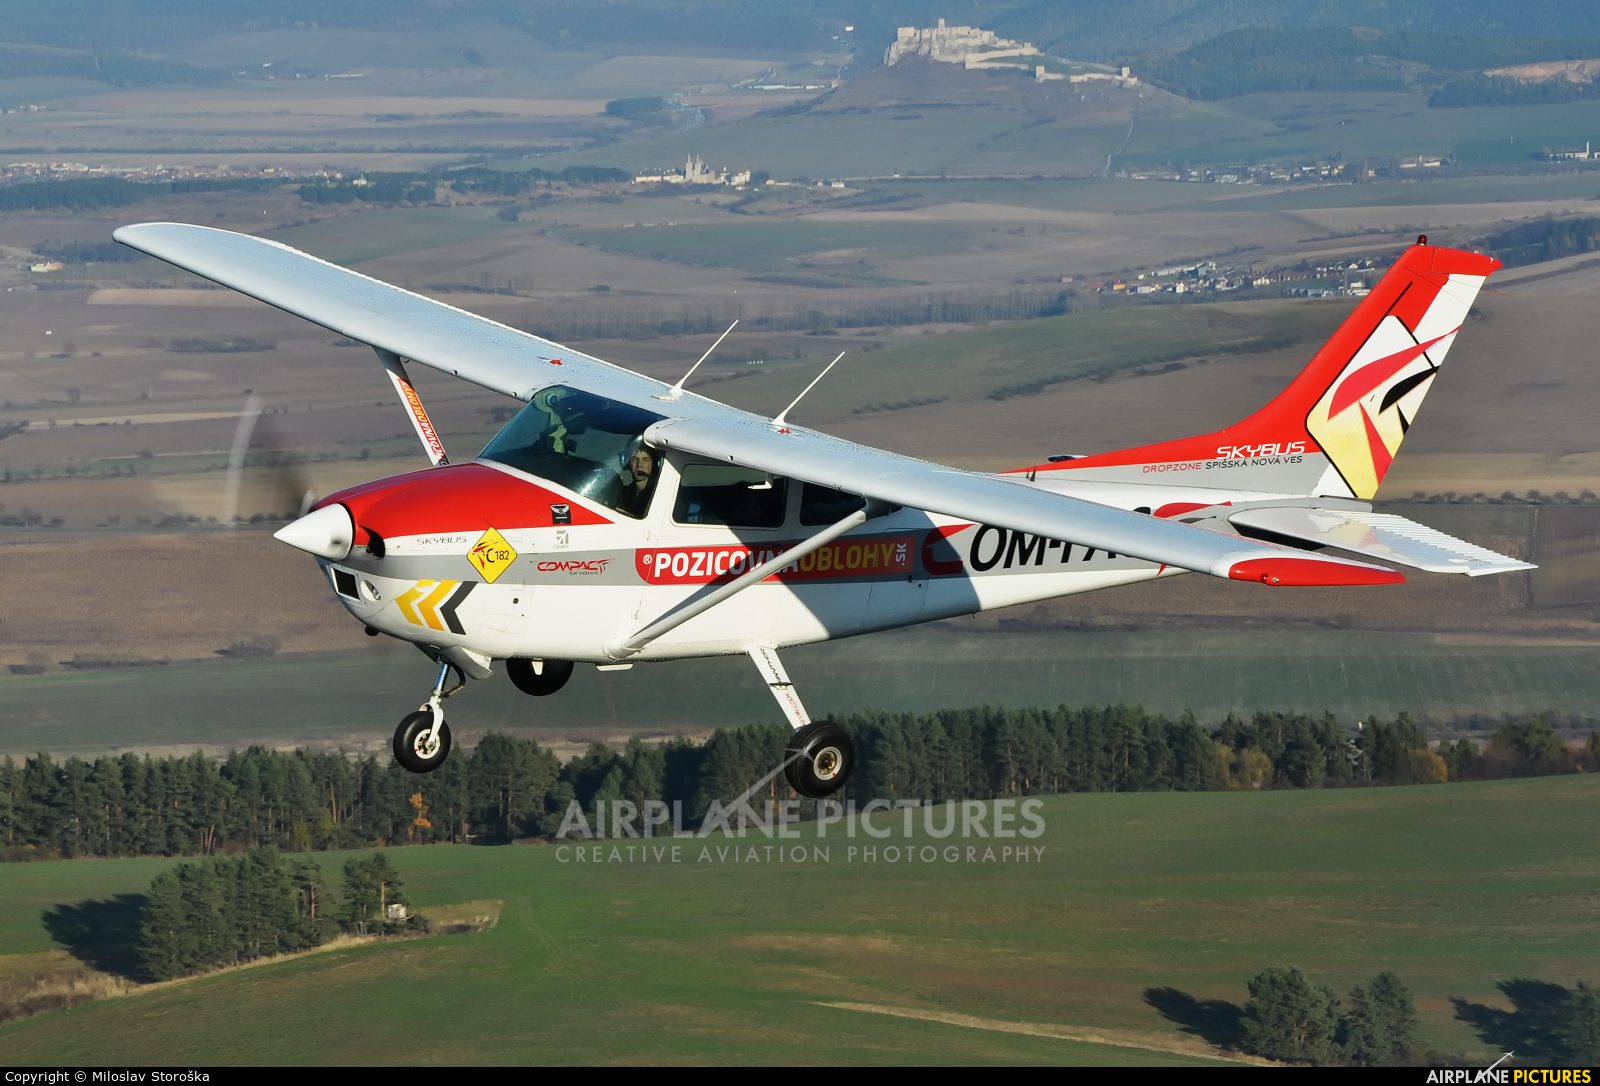 Compact OM-PAC aircraft at In Flight - Slovakia